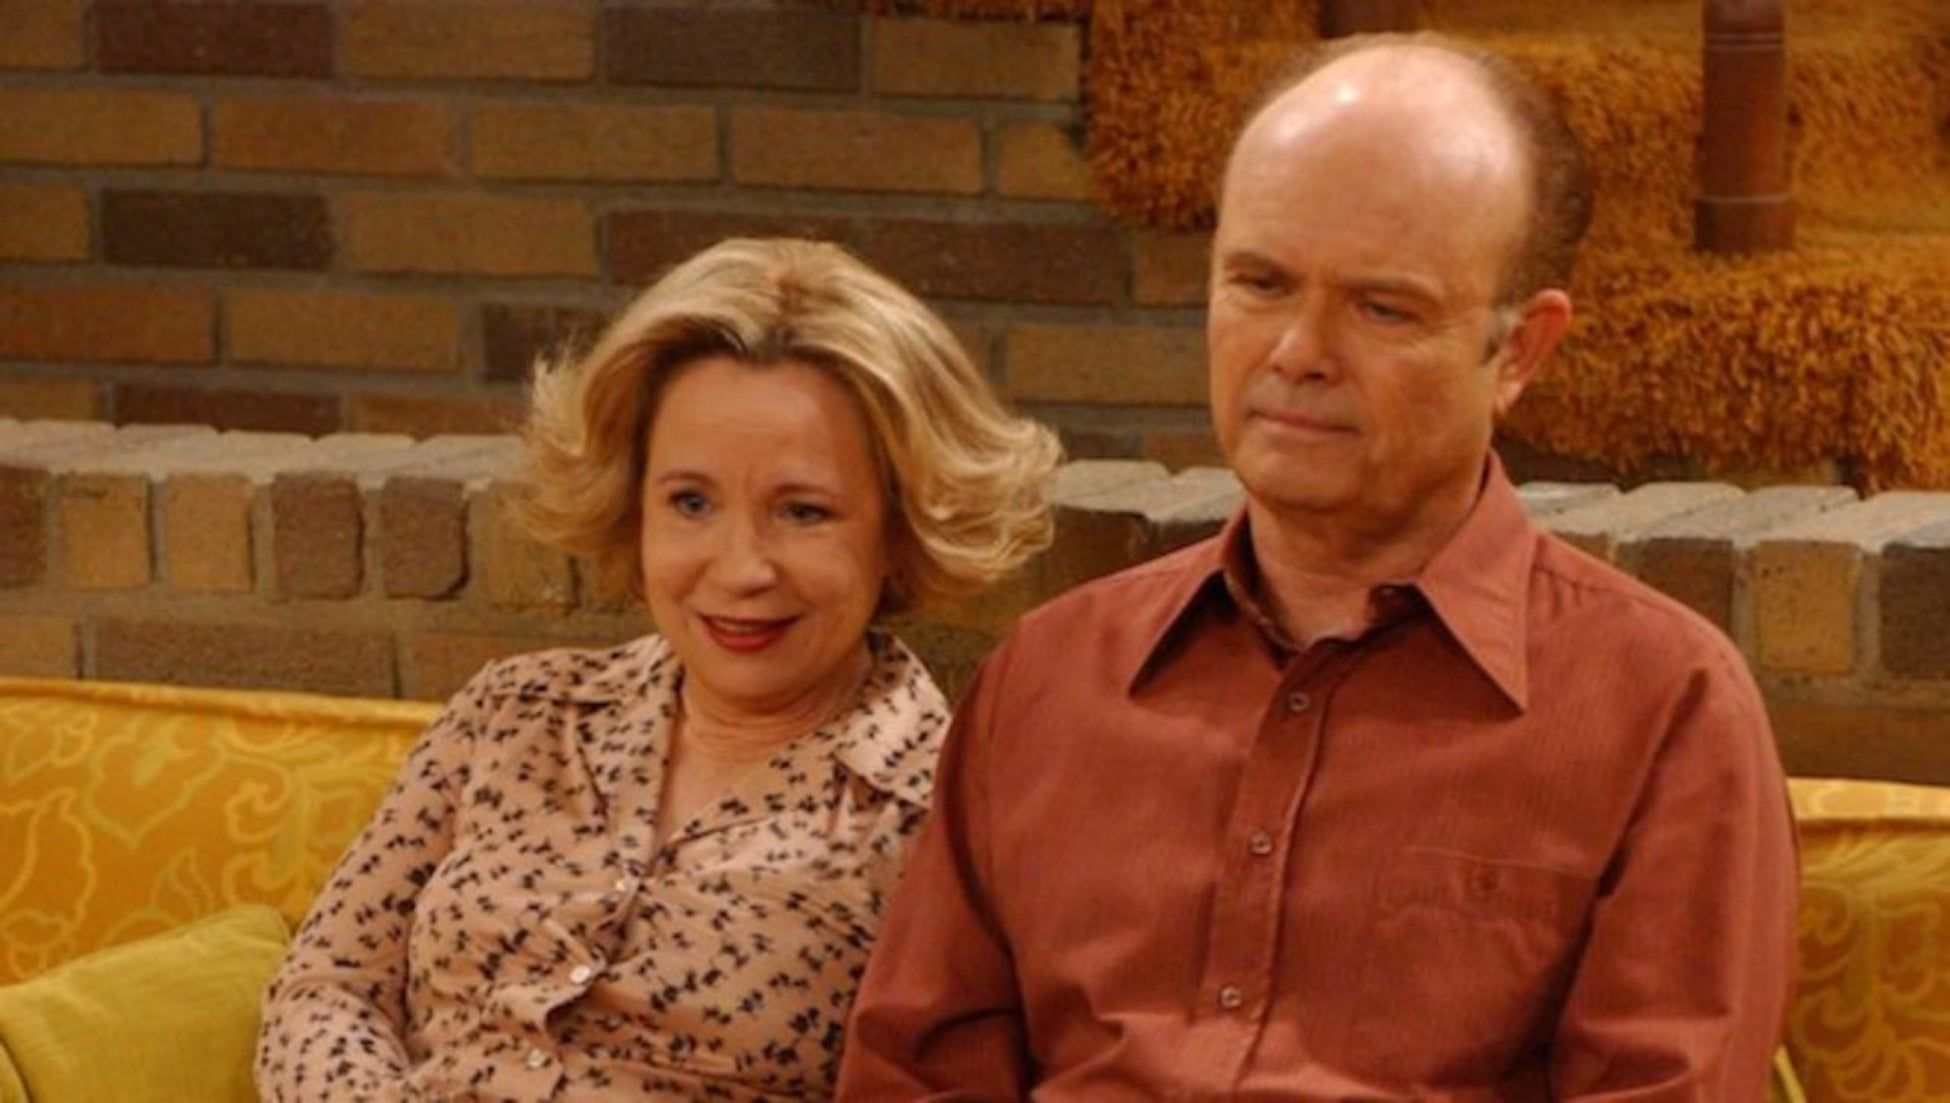 That '70s Show stars Debra Jo Rupp and Kurtwood Smith are reuniting for new project